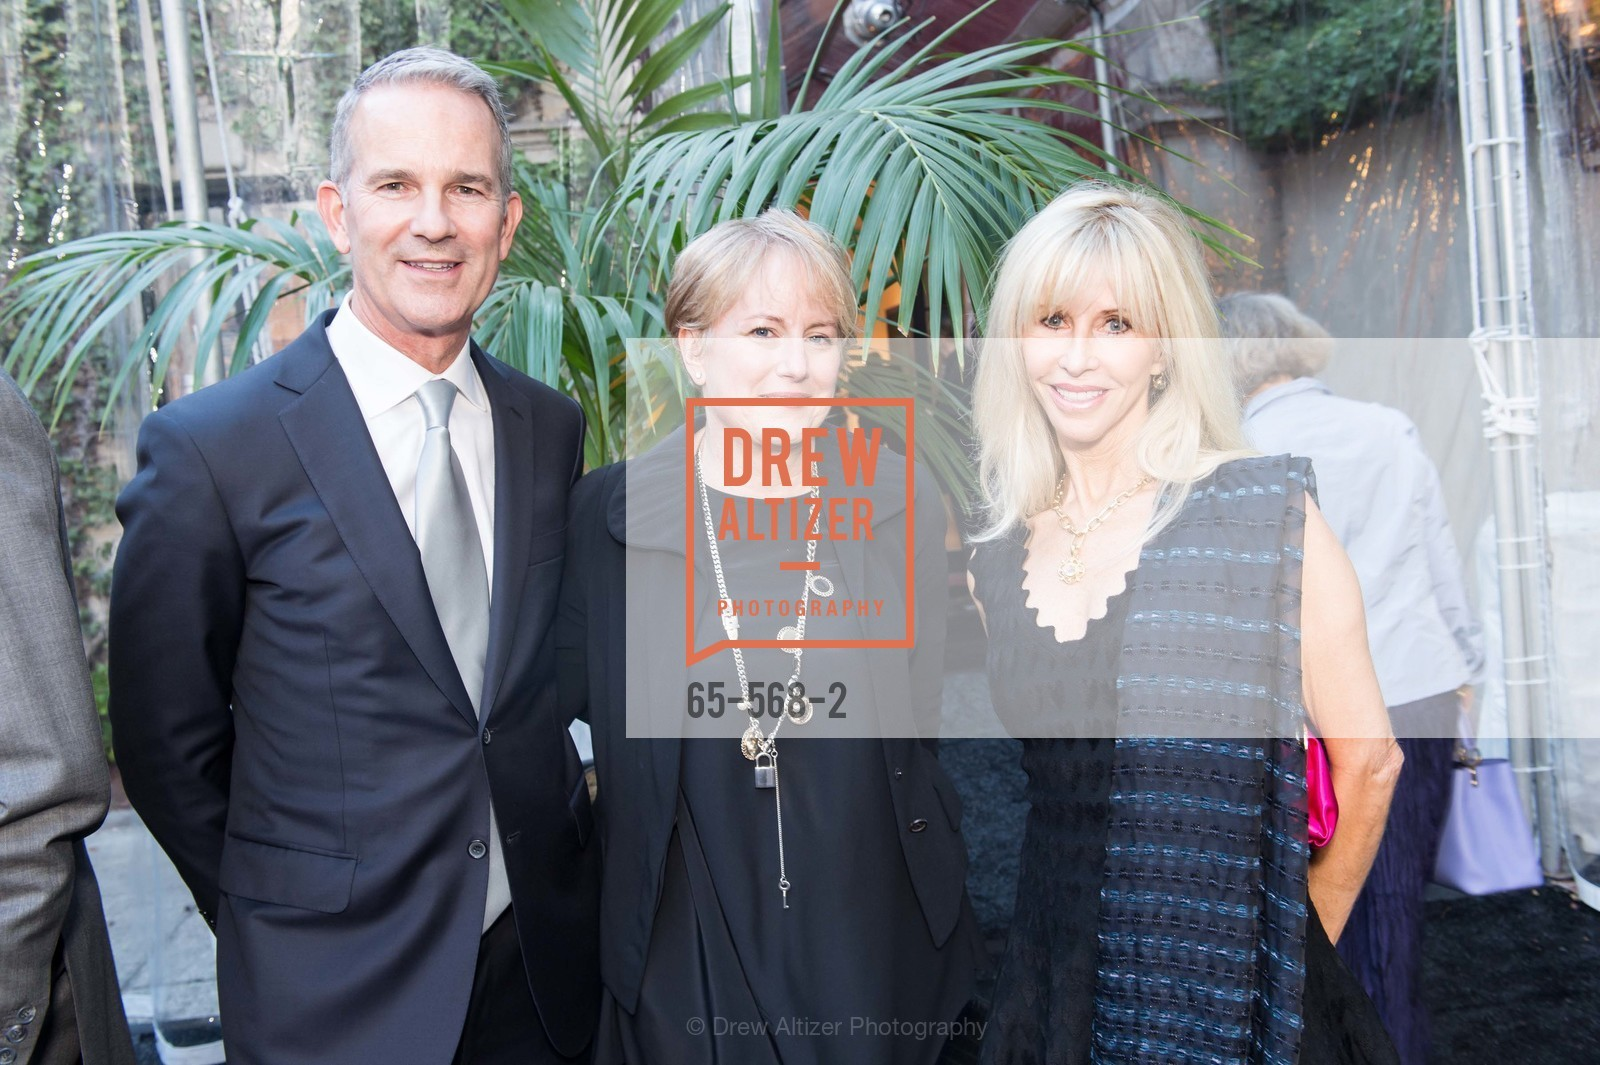 Jeffrey Gibson, Alice Alioto, Ginger Martin, SOTHEBY'S  Hosts a Private Viewing of Highlights from the Collection of MRS. PAUL MELLON, US, September 17th, 2014,Drew Altizer, Drew Altizer Photography, full-service event agency, private events, San Francisco photographer, photographer California